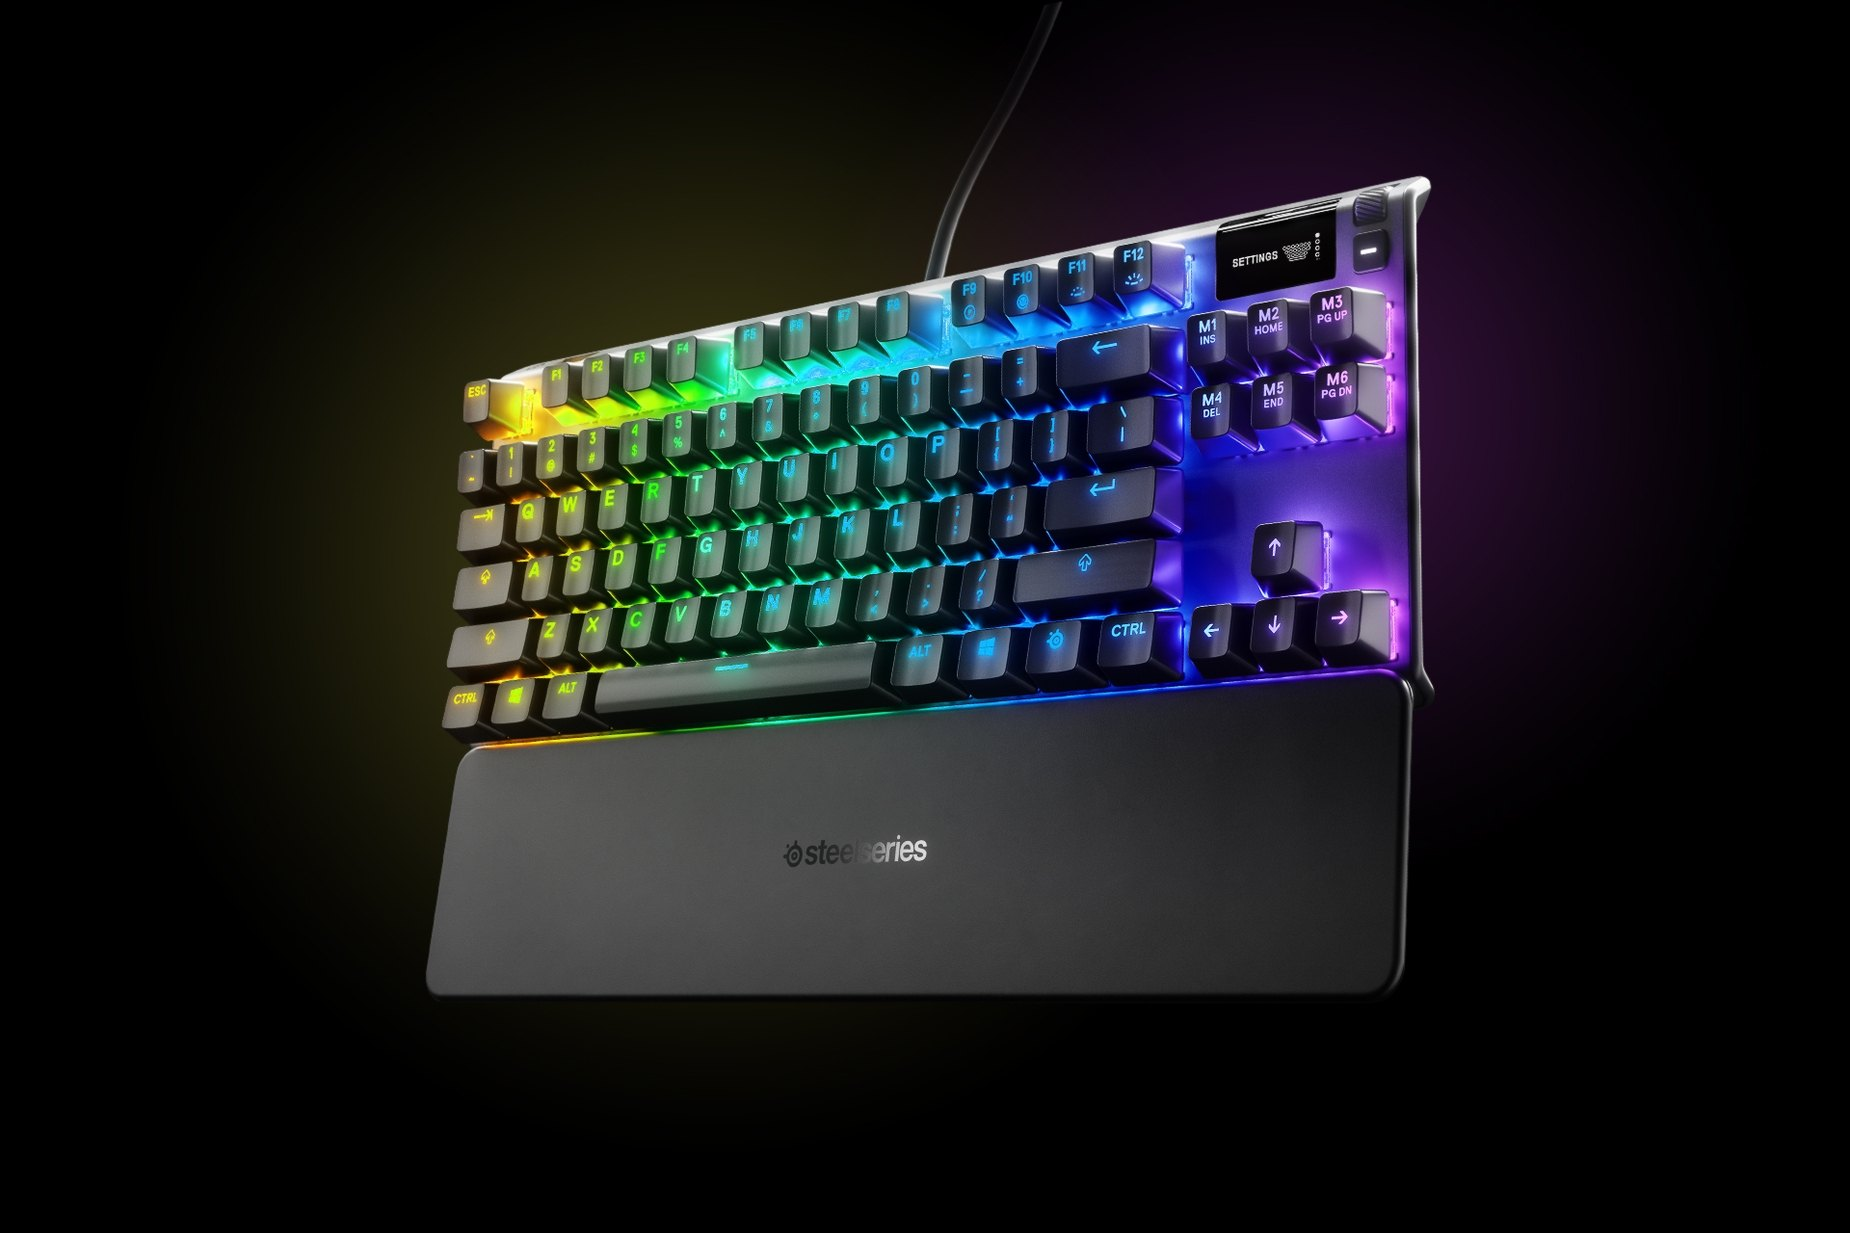 UK English - Apex 7 TKL (Brown Switch) gaming keyboard with the illumination lit up on dark background, also shows the OLED screen and controls used to change settings and adjust audio